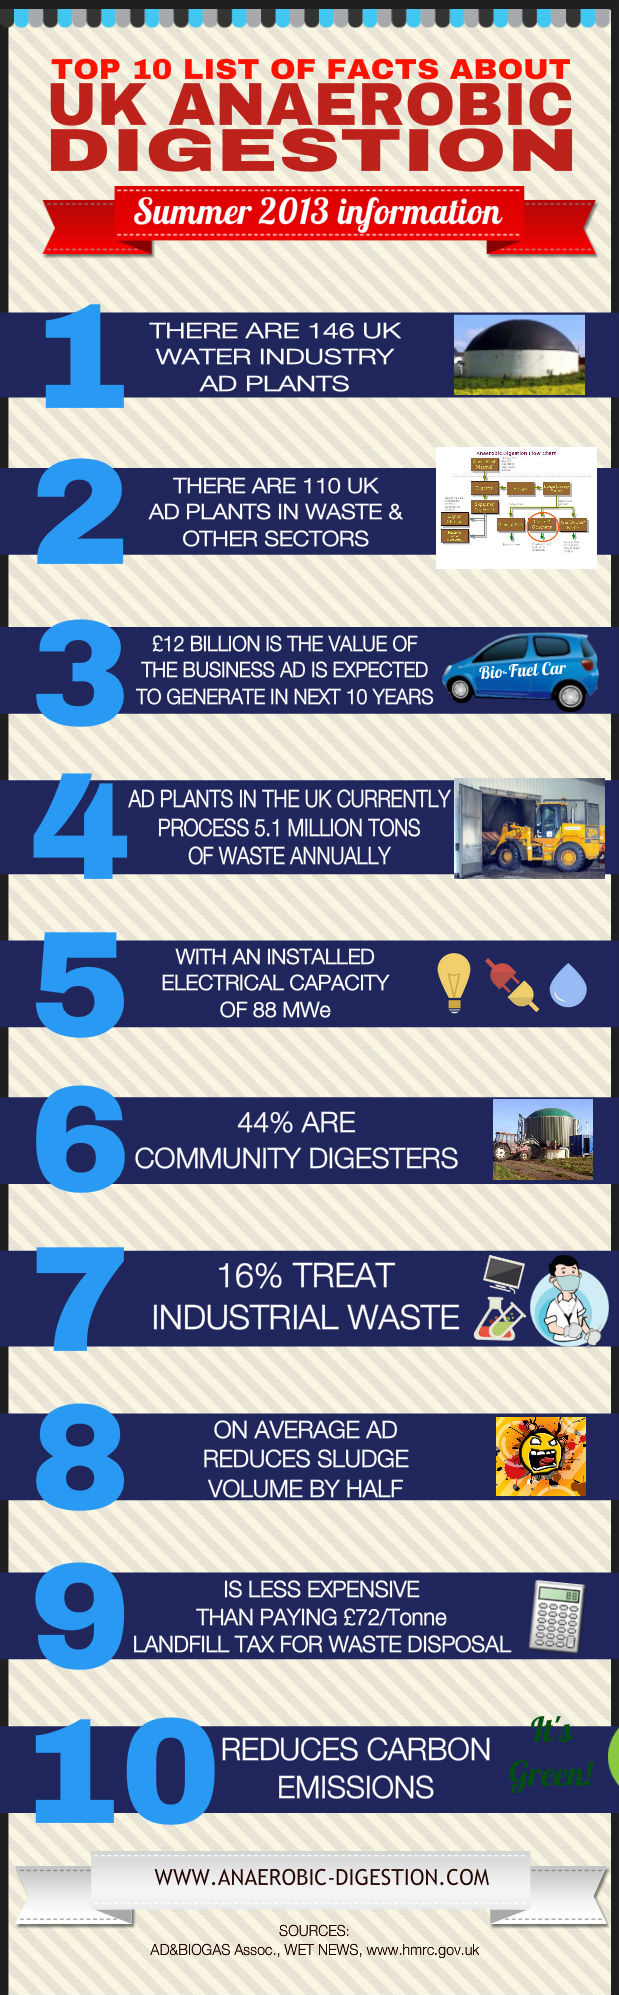 10 Facts About Anaerobic Digestion - Infographic